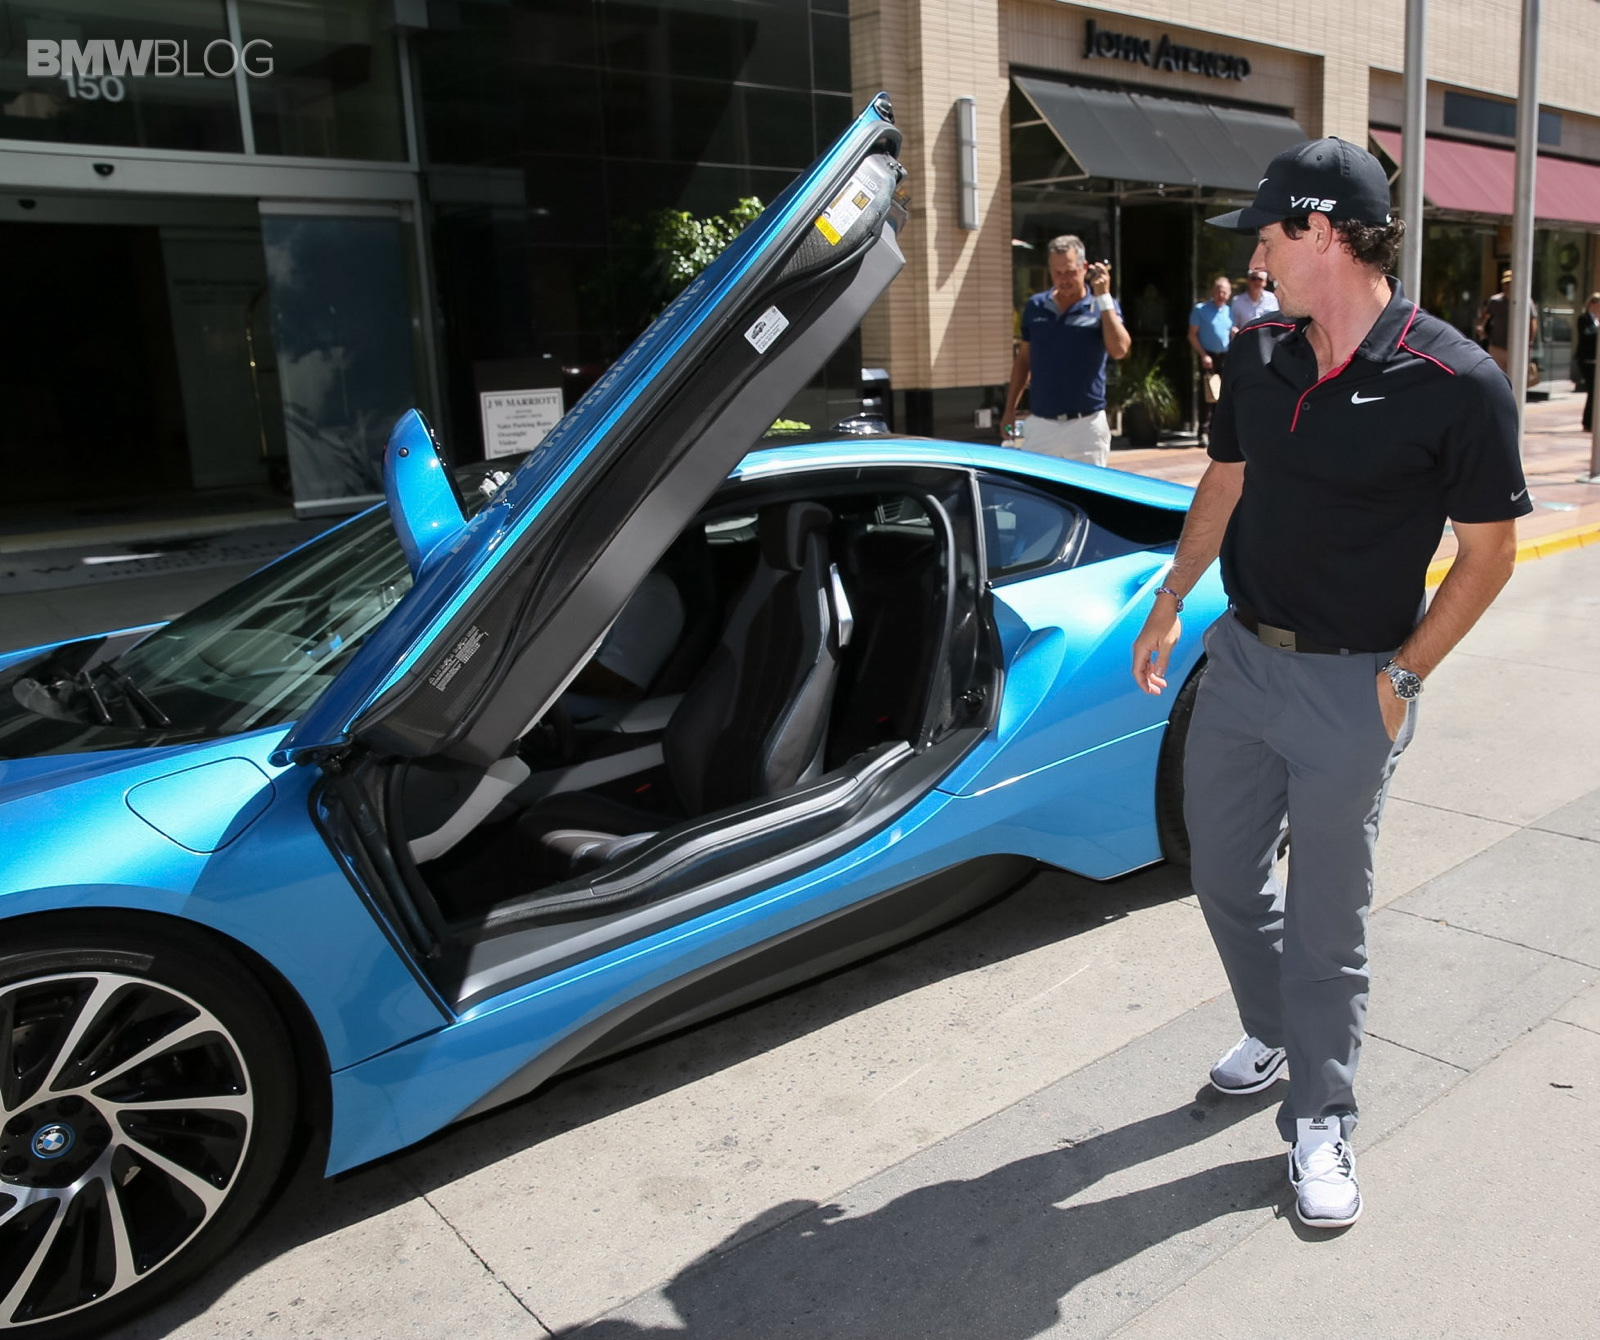 Golf Star Rory McIlroy Takes The BMW I8 For A Ride